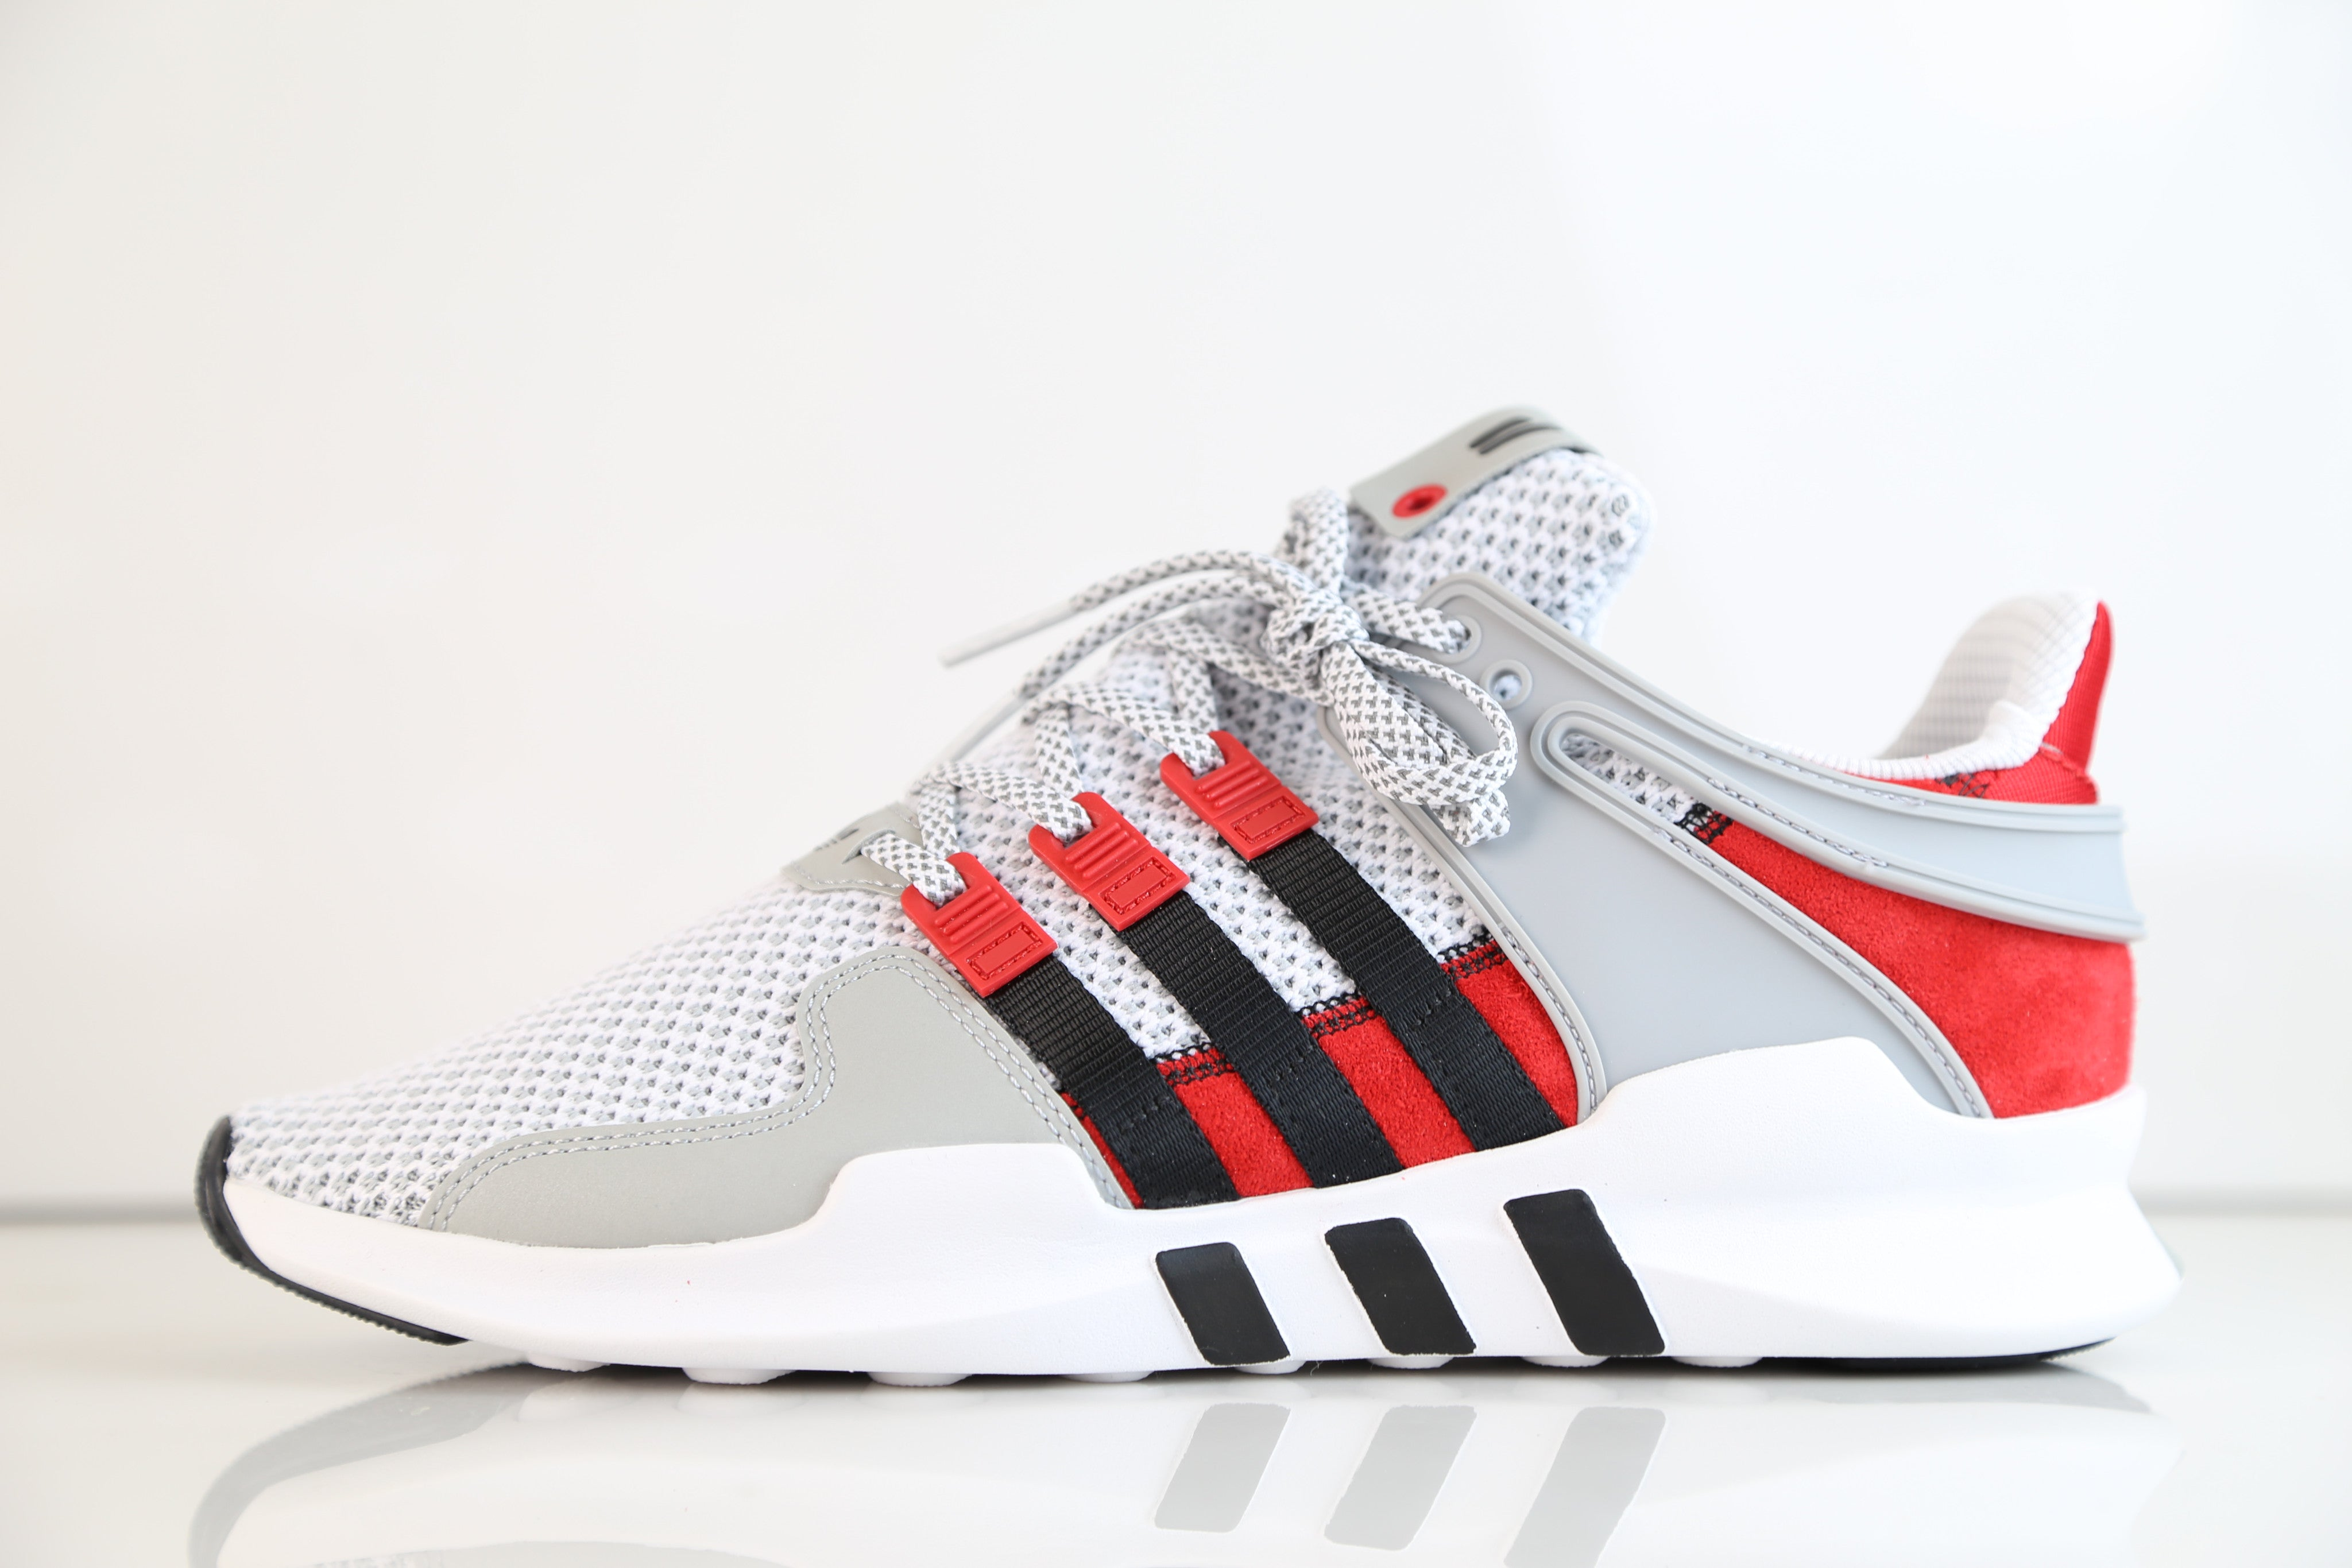 d2b5f49df7a2 Adidas Consortium X Overkill Coat of Arms EQT Support ADV White Black